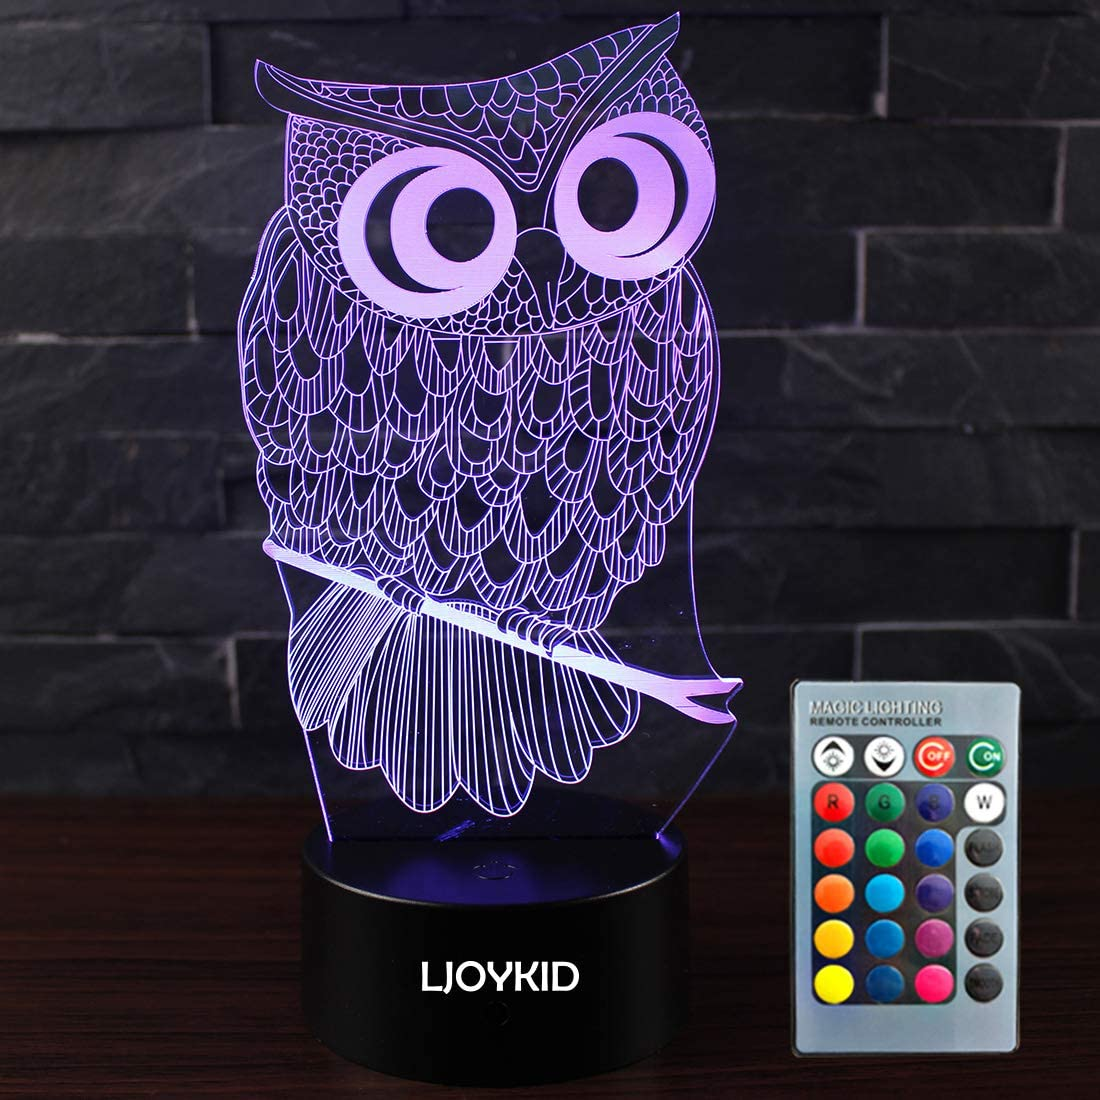 LJOYKID Owl 3D Led Night Light Touch New life 7 shop - Optical Colors Illusion